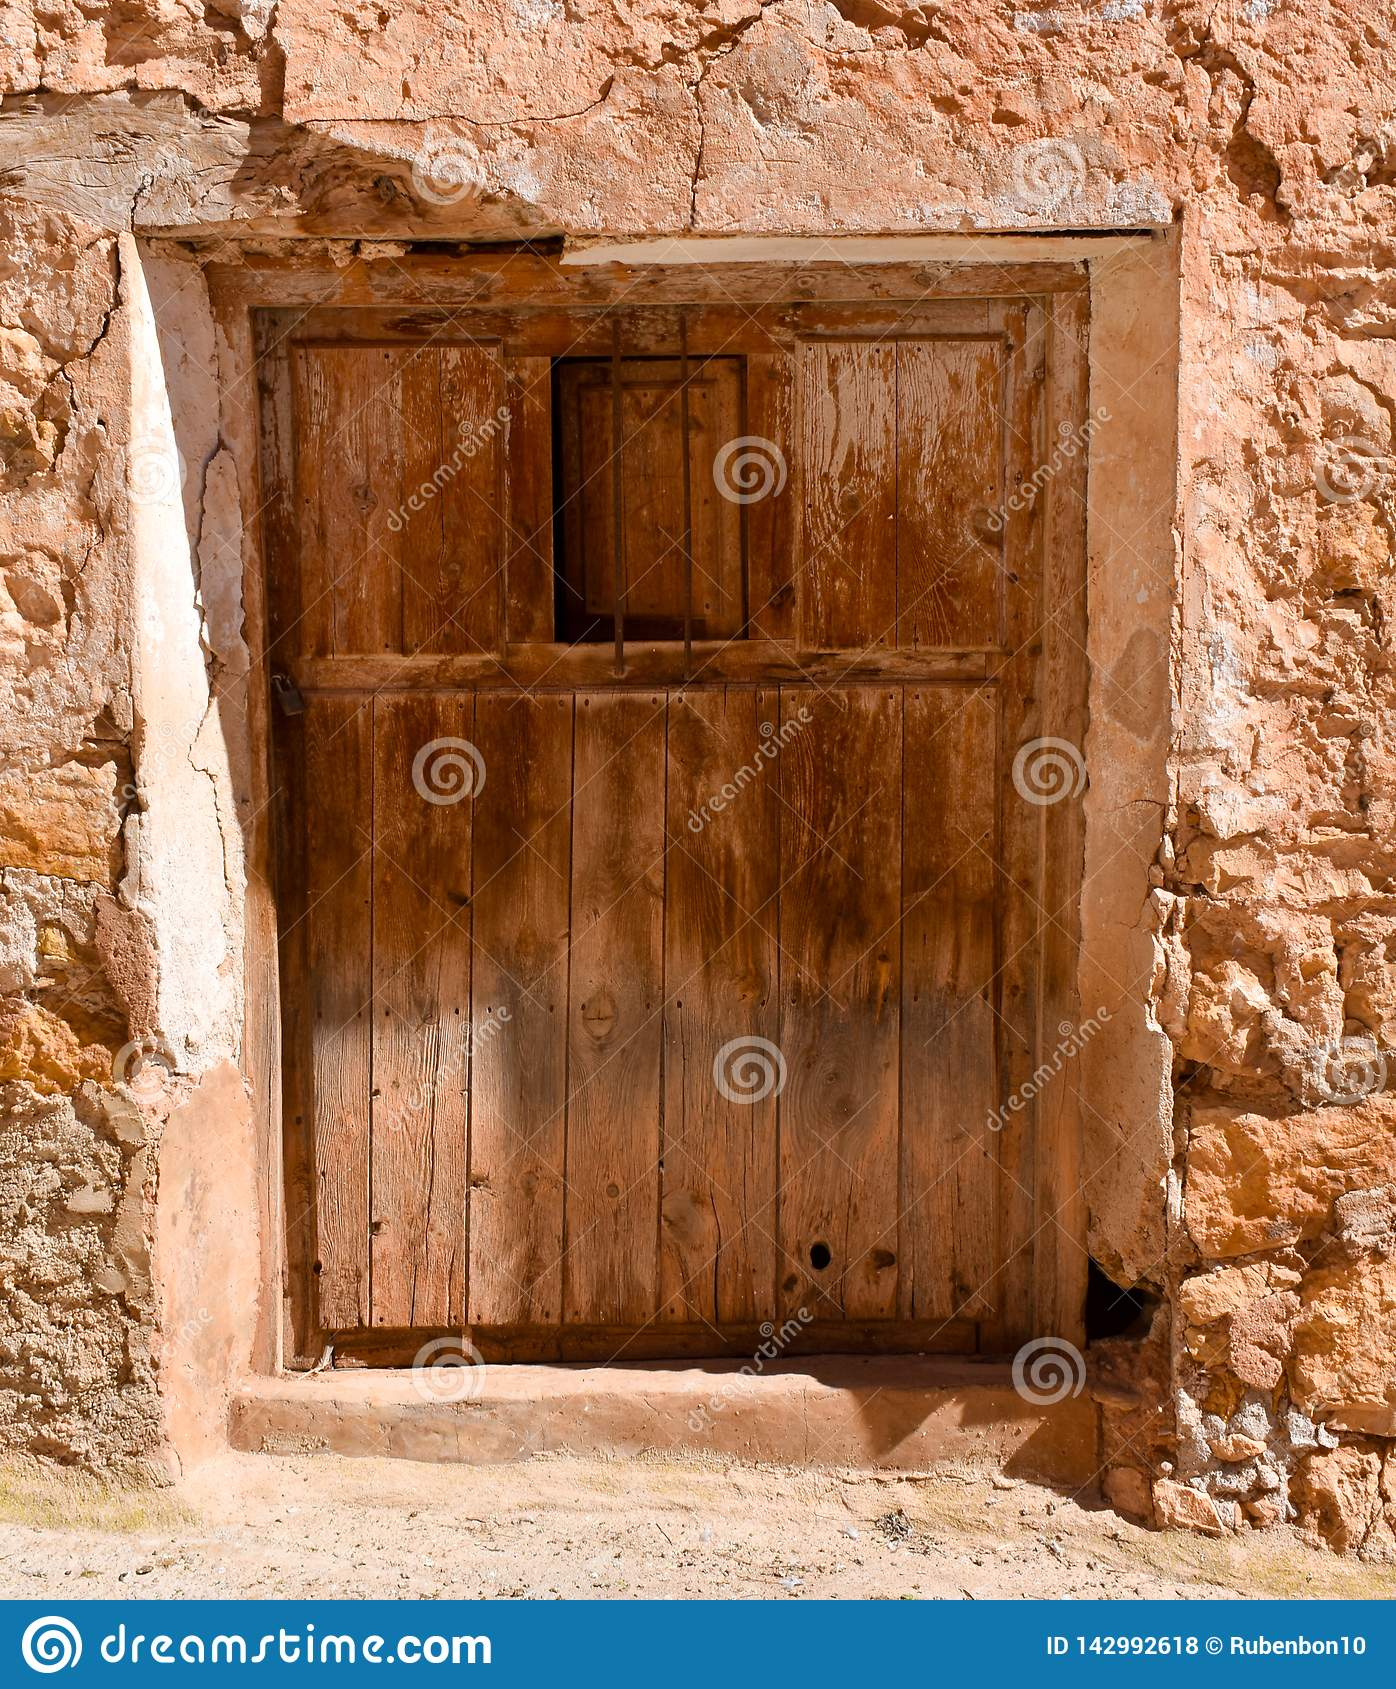 close up of an old wooden closed door with an opened small window in a wall of concrete, mud and stone in a closed abandoned house